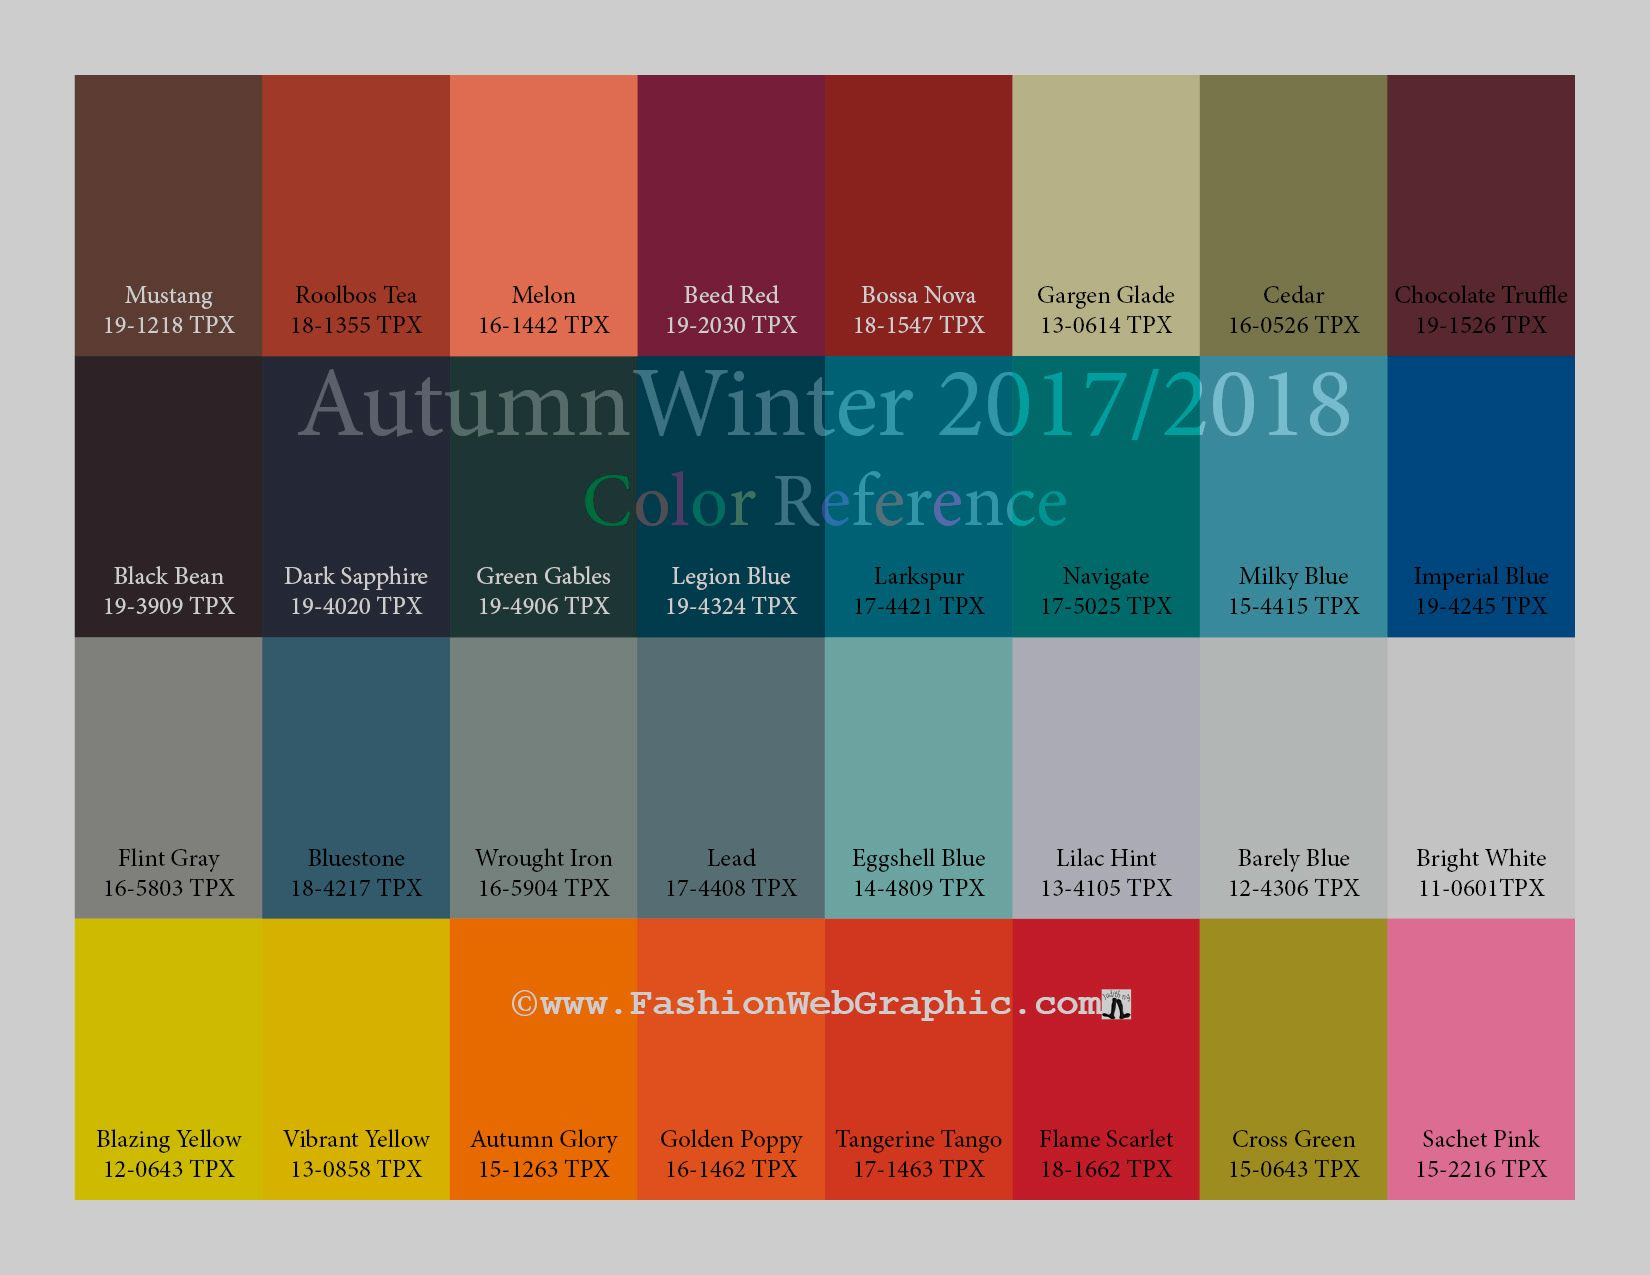 Autumn Winter 2017/2018 trend forecasting is a TREND/COLOR Guide ...